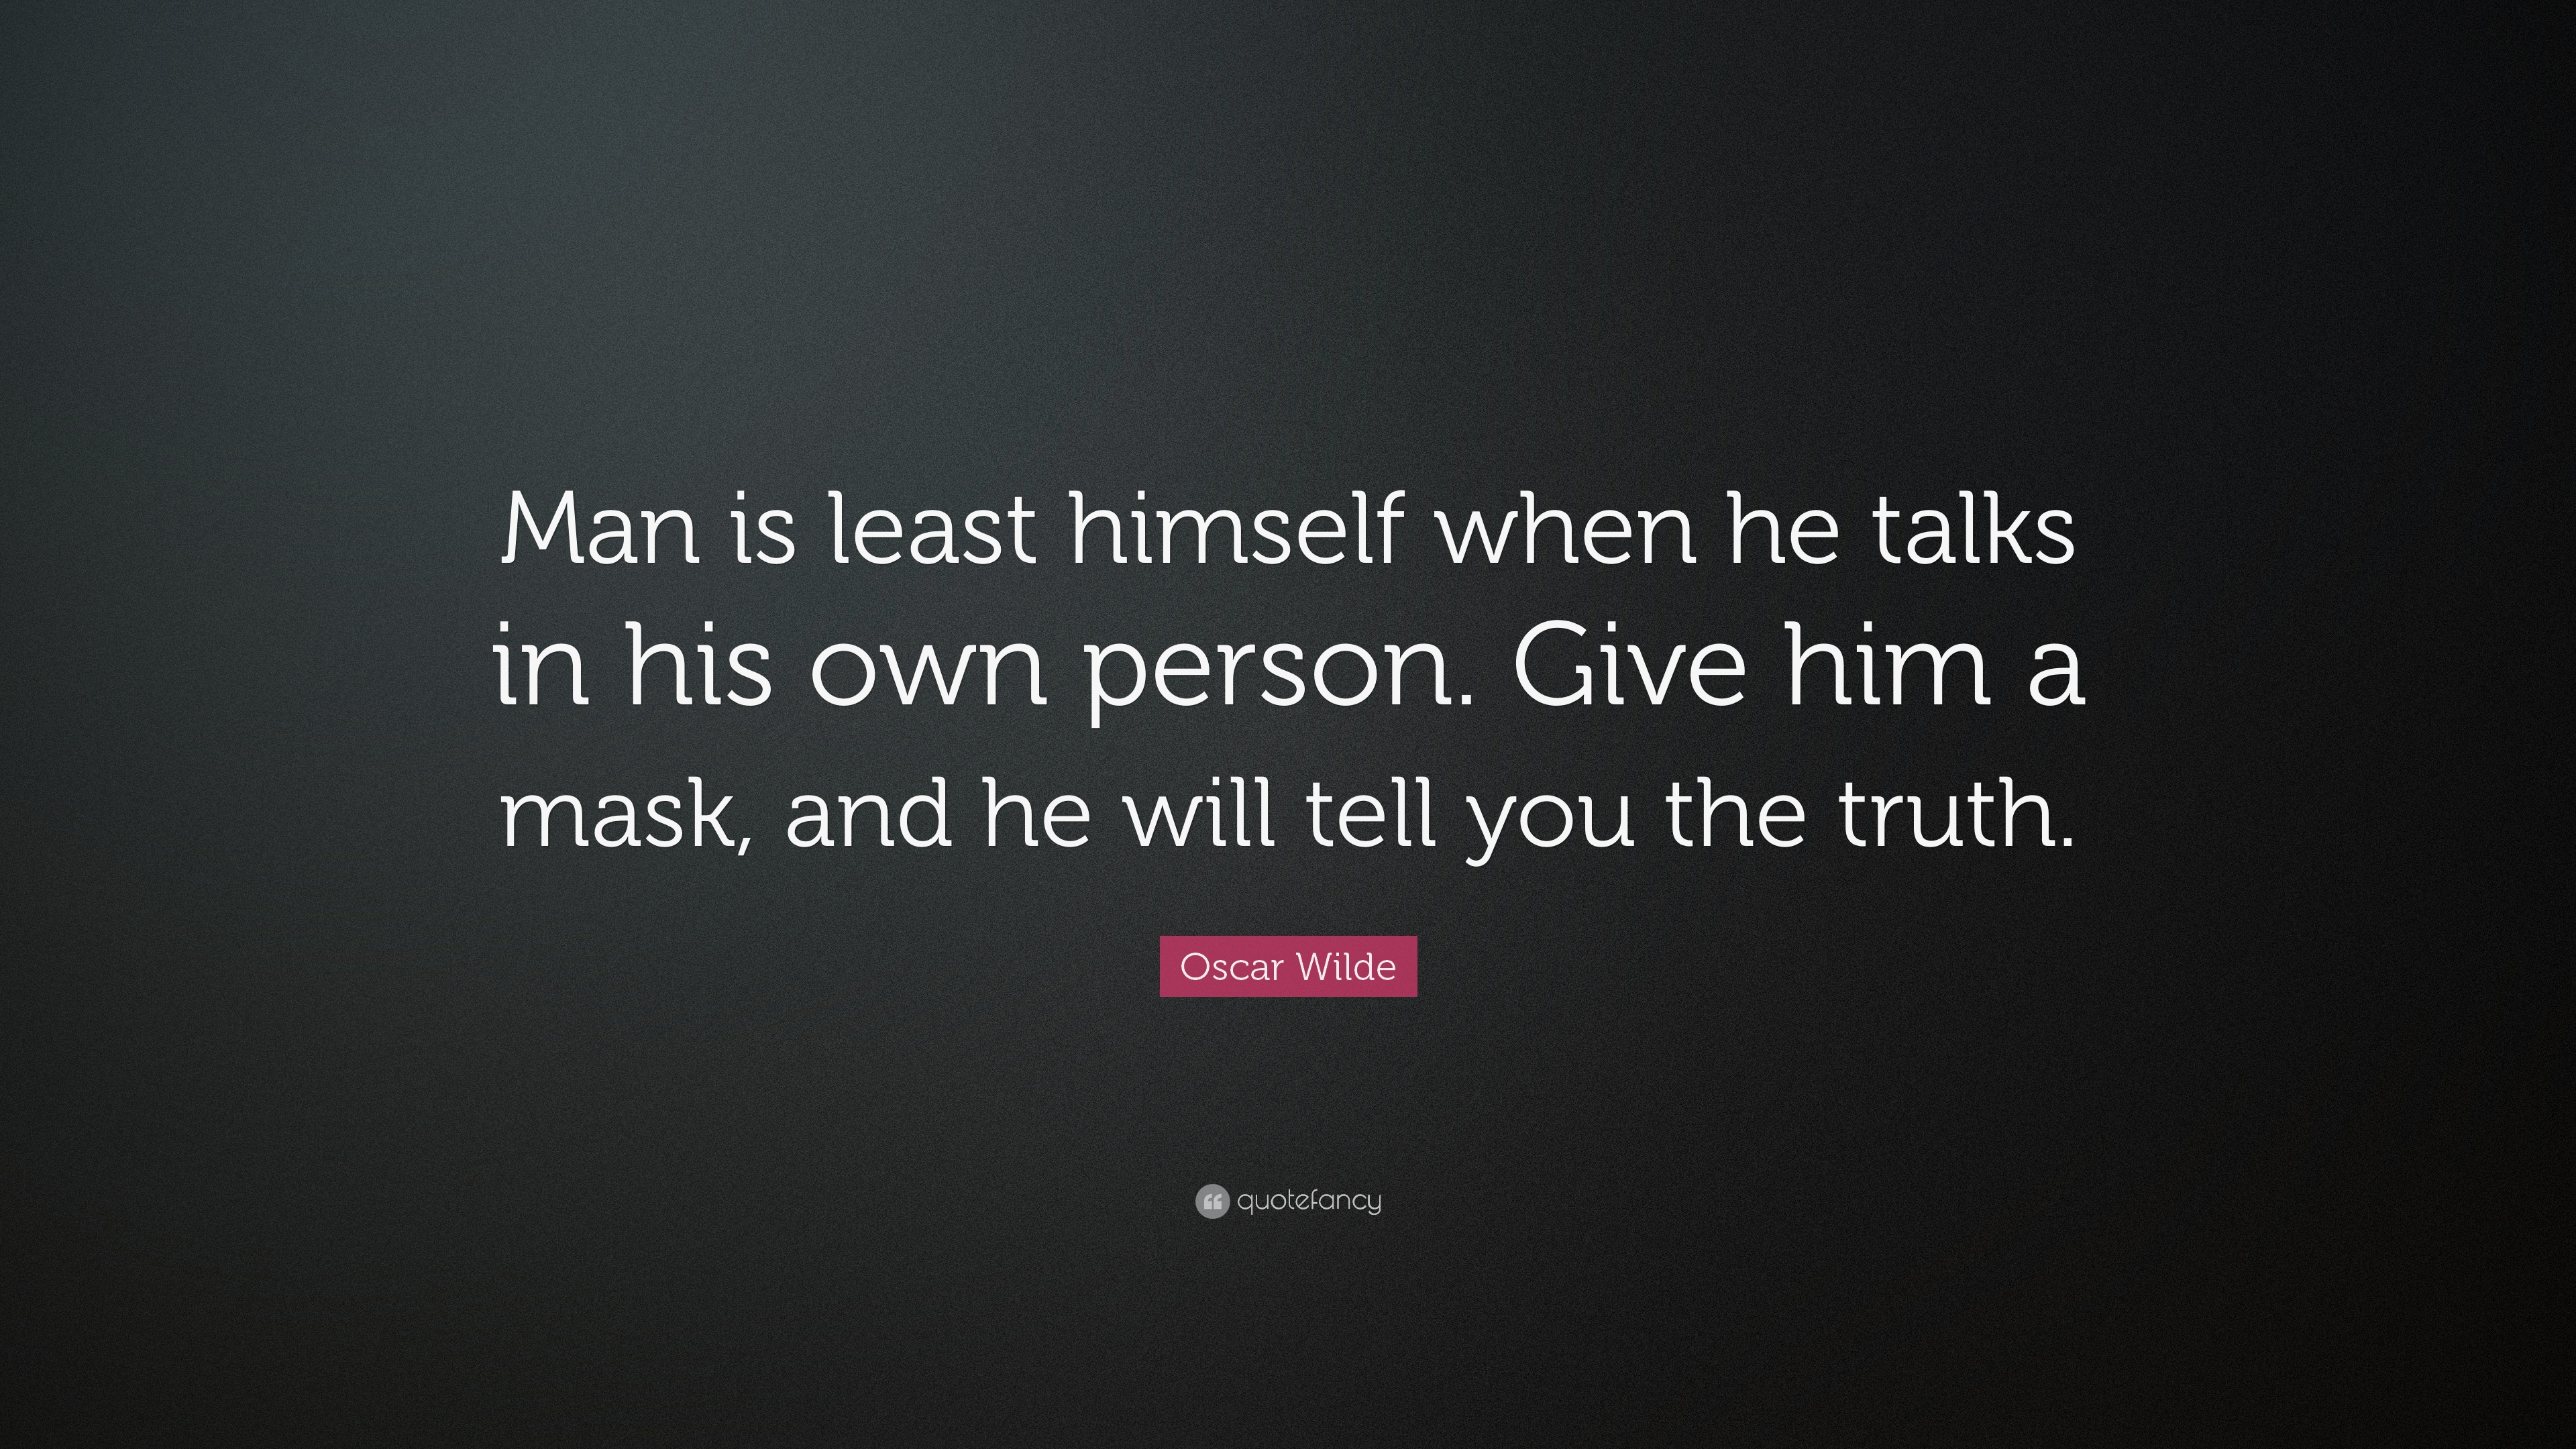 Image result for Man is least himself when he talks in his own person. Give him a mask, and he will tell you the truth.